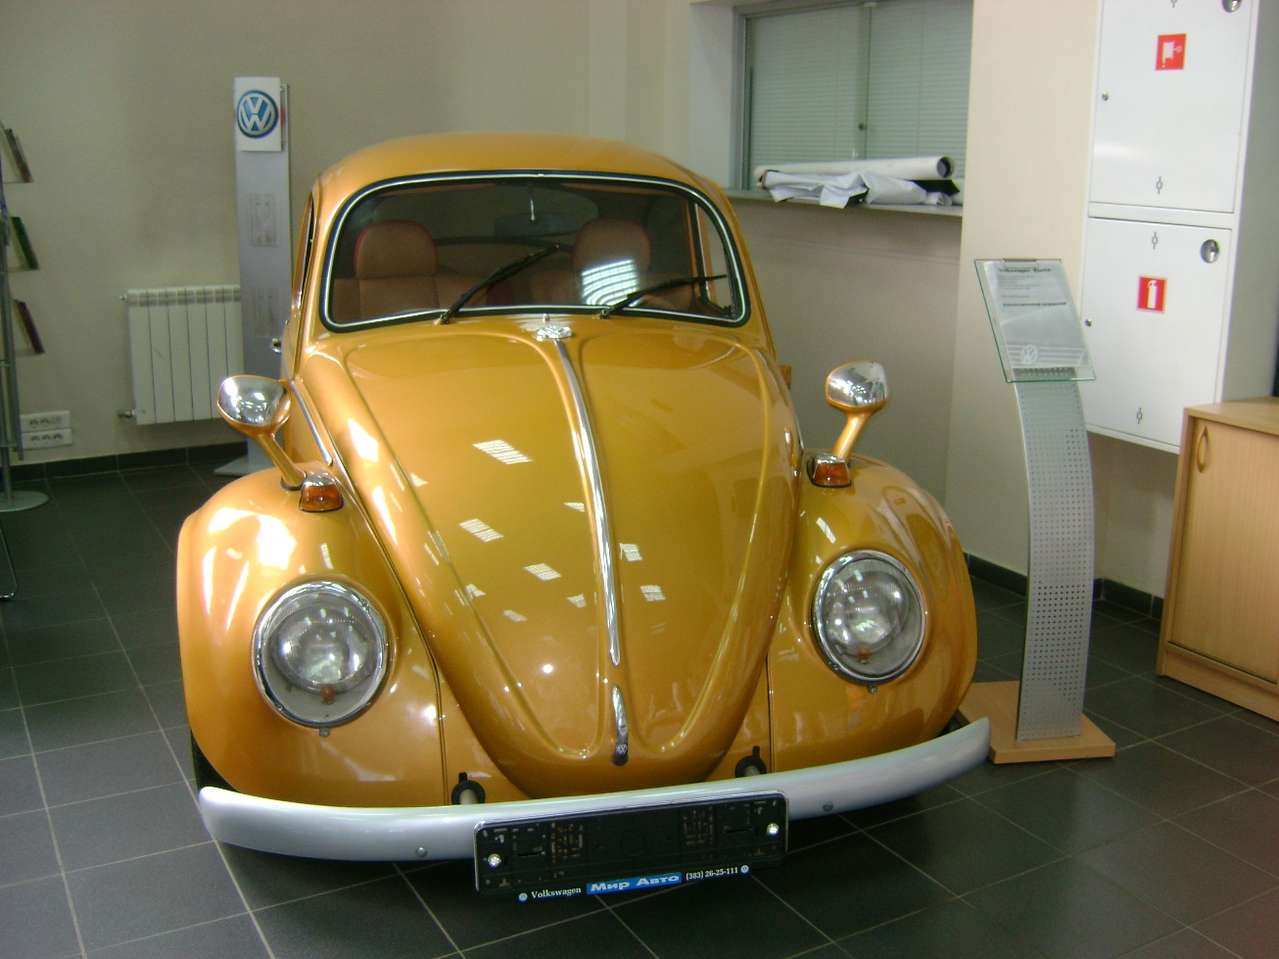 Find 2877 used Volkswagen Beetle listings at CarGurus